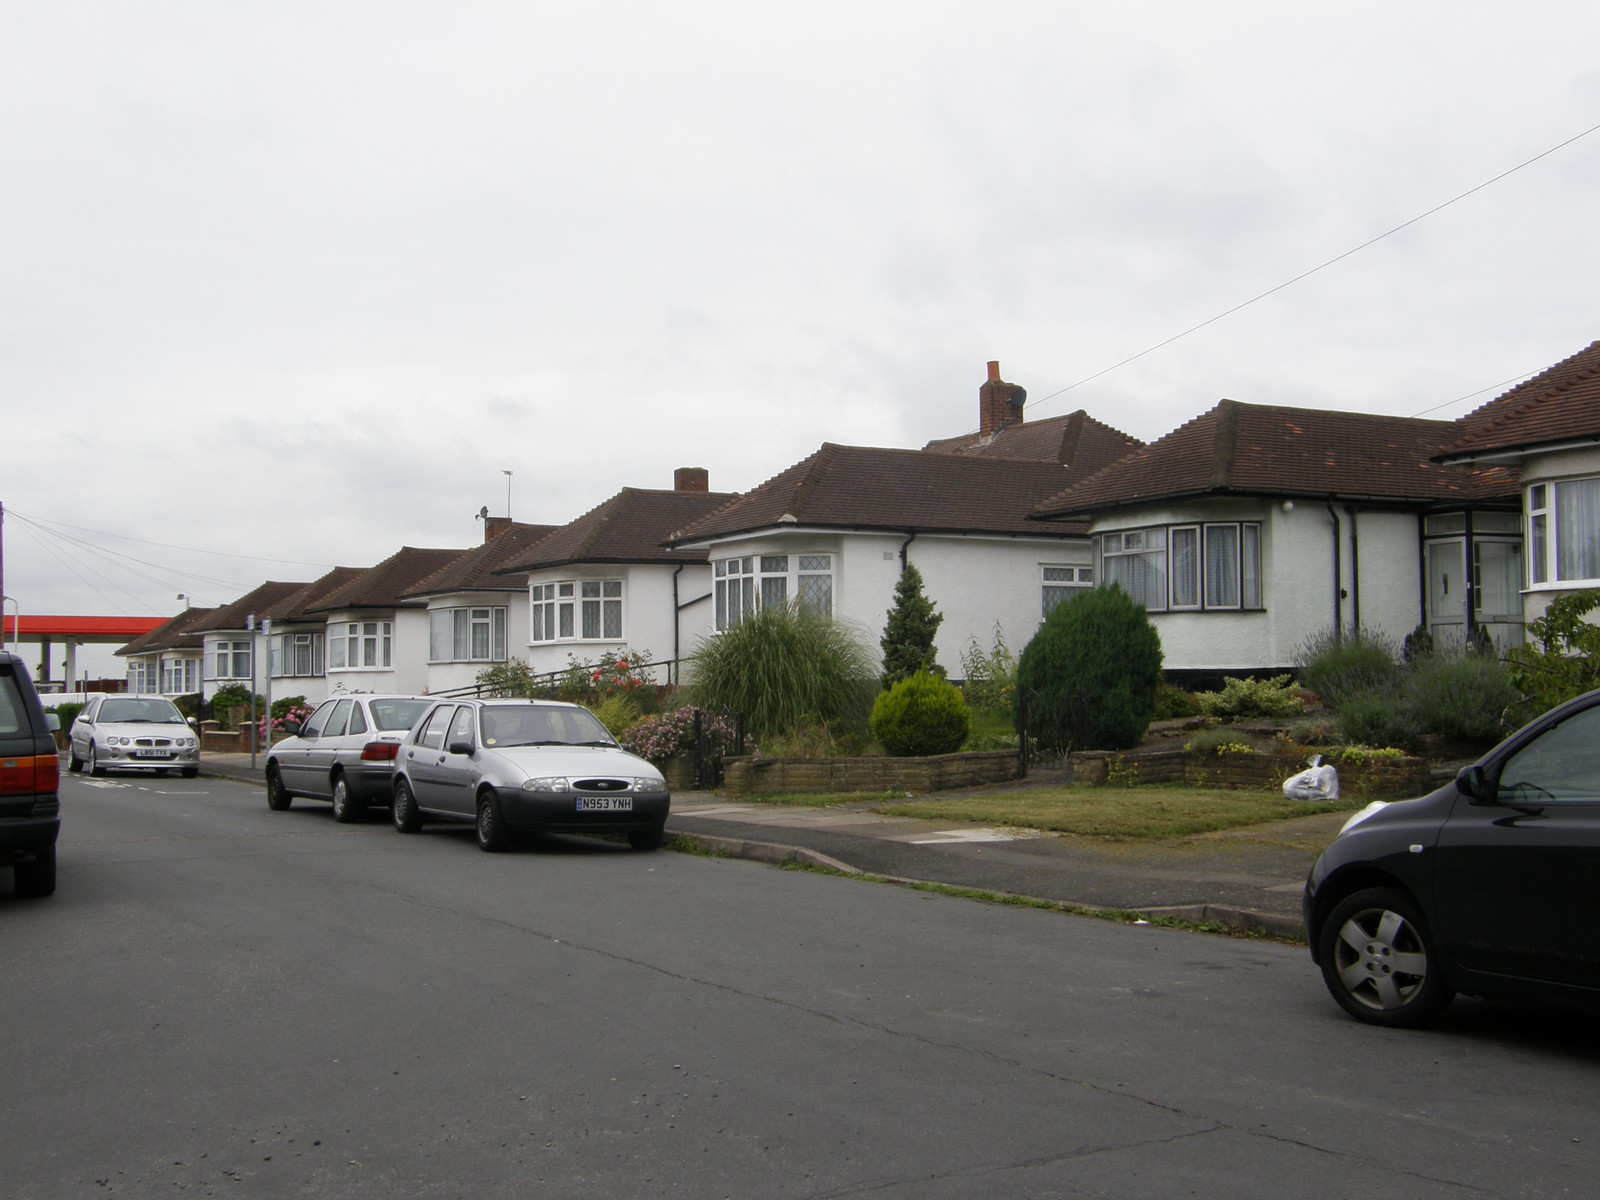 Image from West Ruislip to Perivale